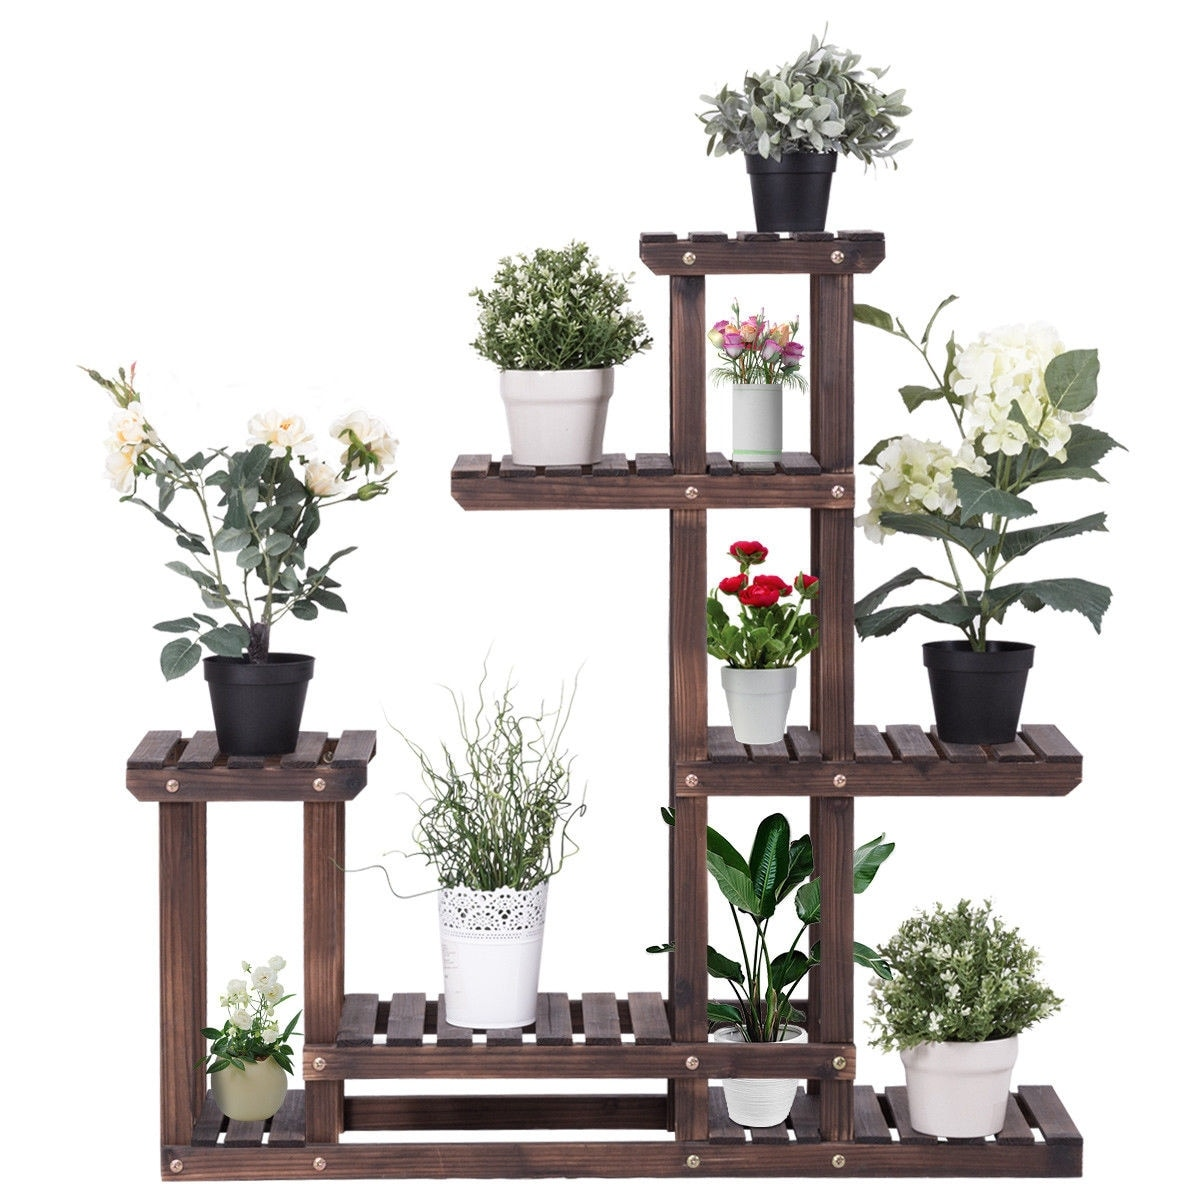 Costway Outdoor Wooden Plant Flower Display Stand 6 Wood Shelf Storage Rack  Garden